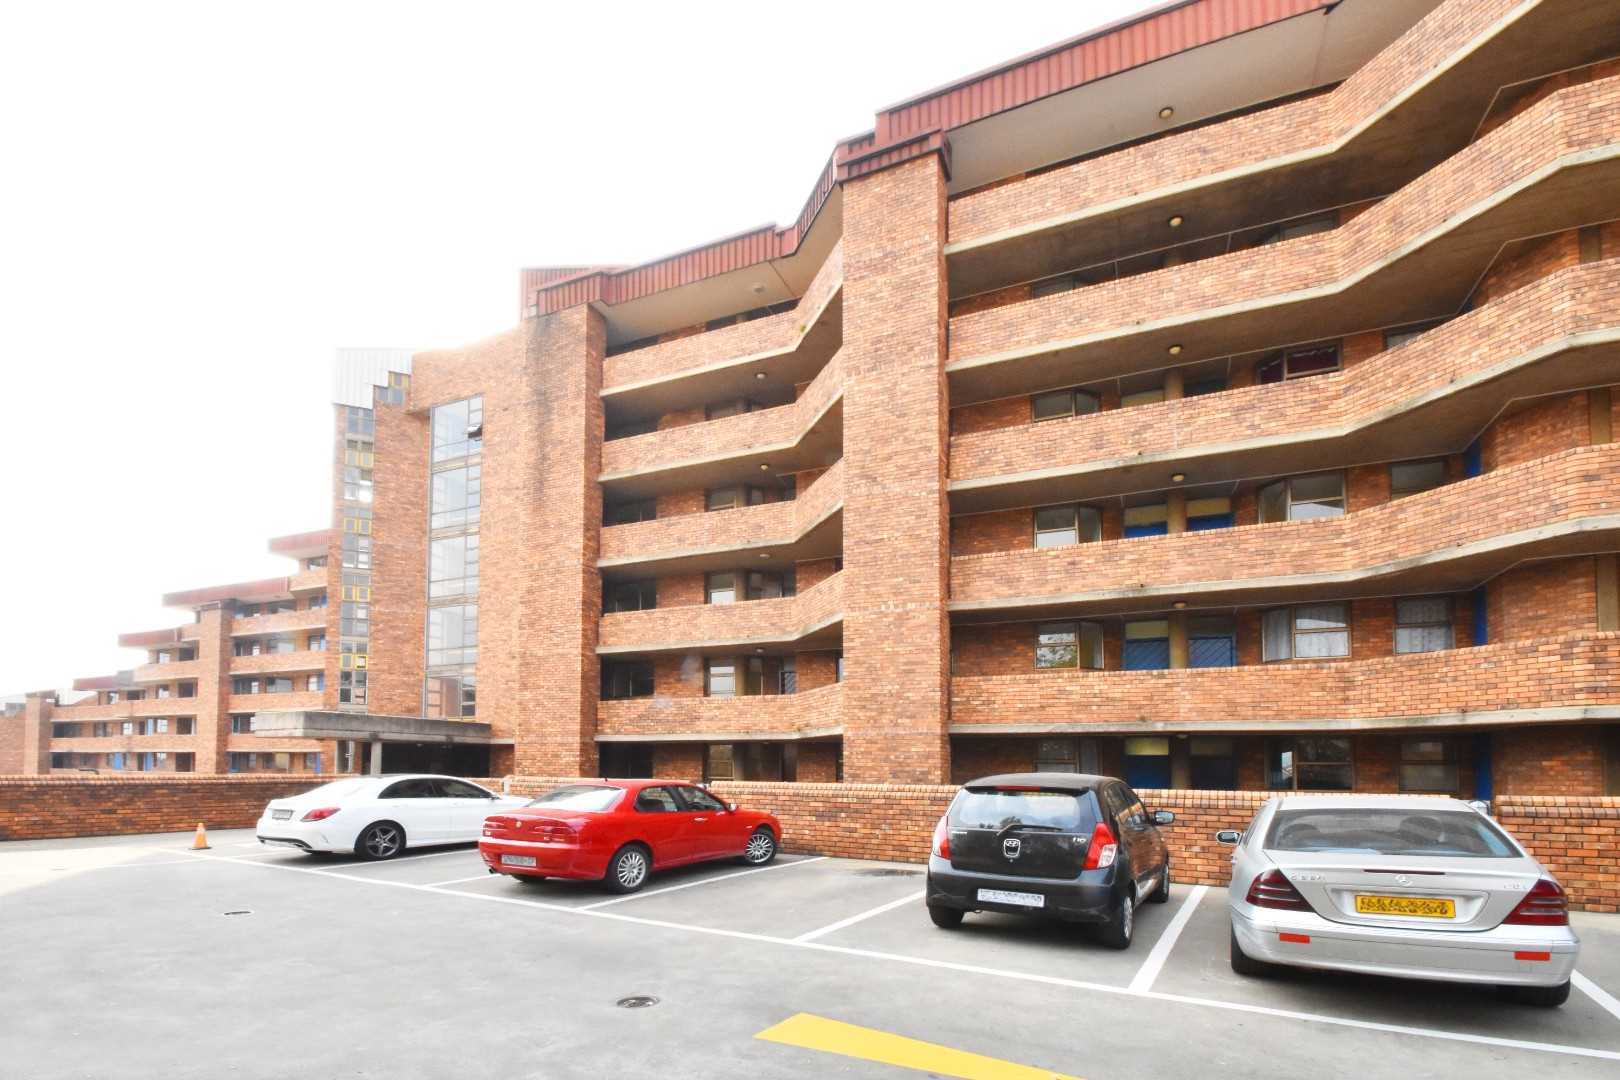 The Habitat, secure, well maintained and managed apartment bock in the heart of Ferndale